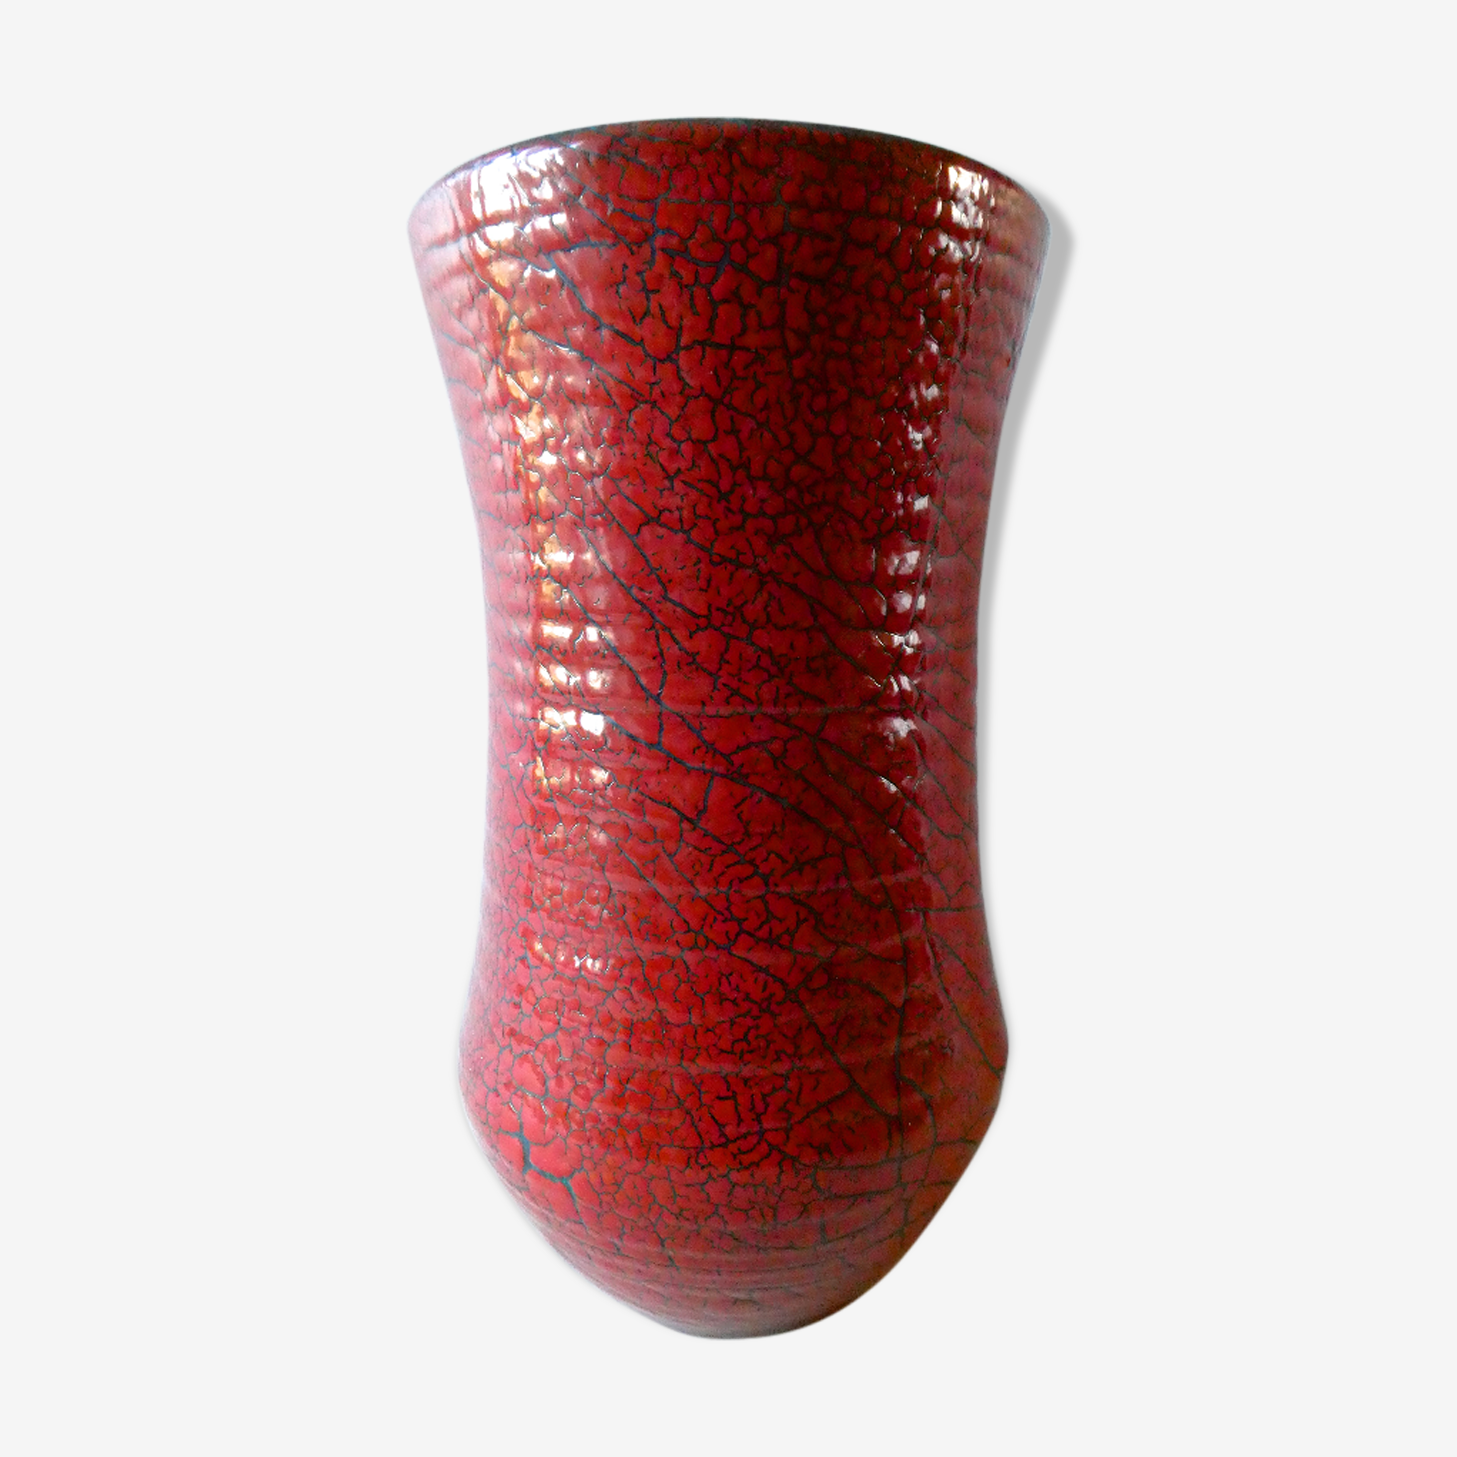 Vase ceramic cracked red Accolay in the 1960